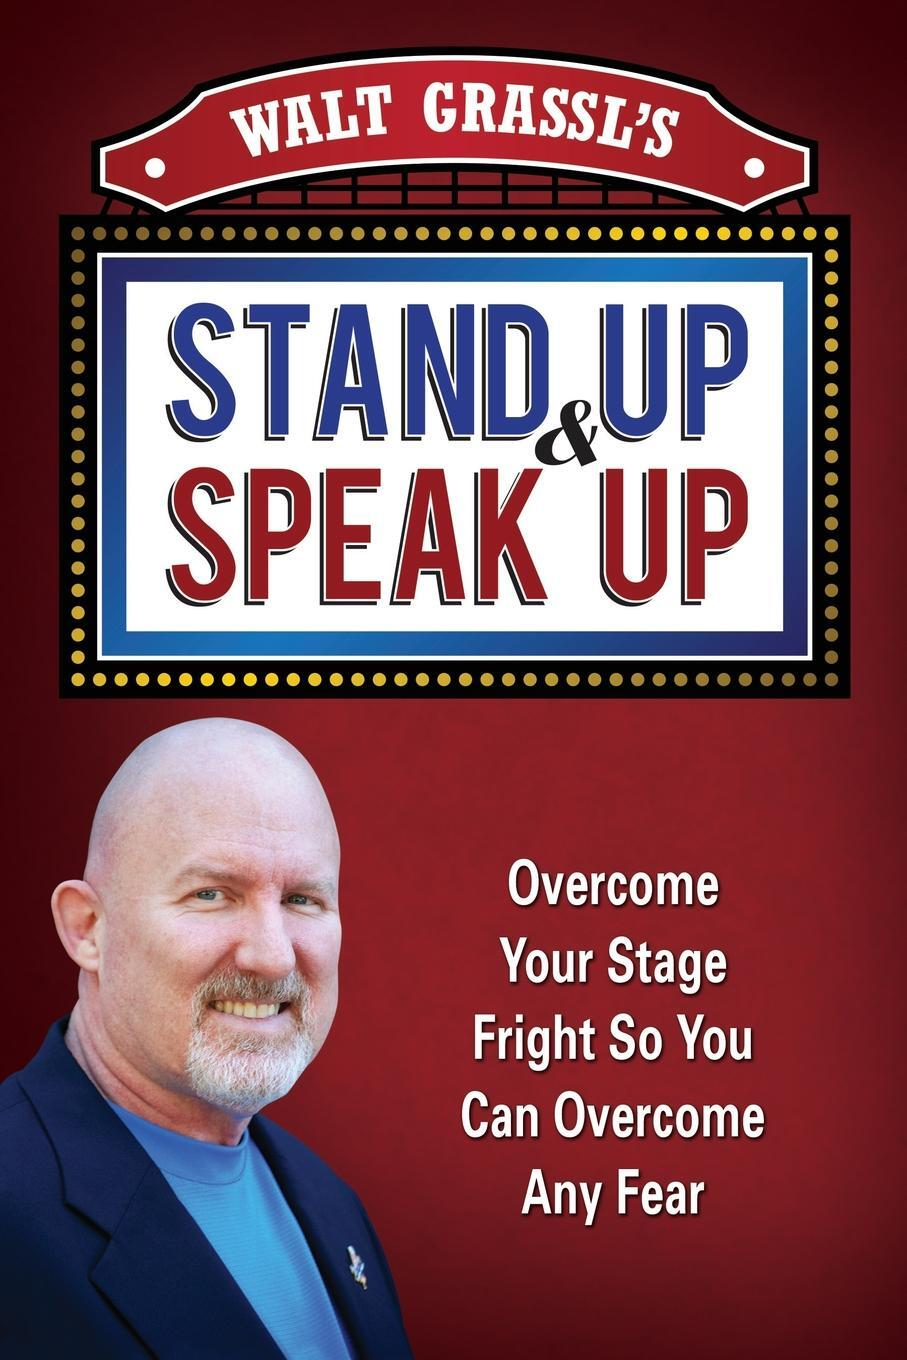 Walt Grassl`s Stand Up & Speak Up. Overcome Your Stage Fright So You Can Overcome Any Fear. WAlt Grassl